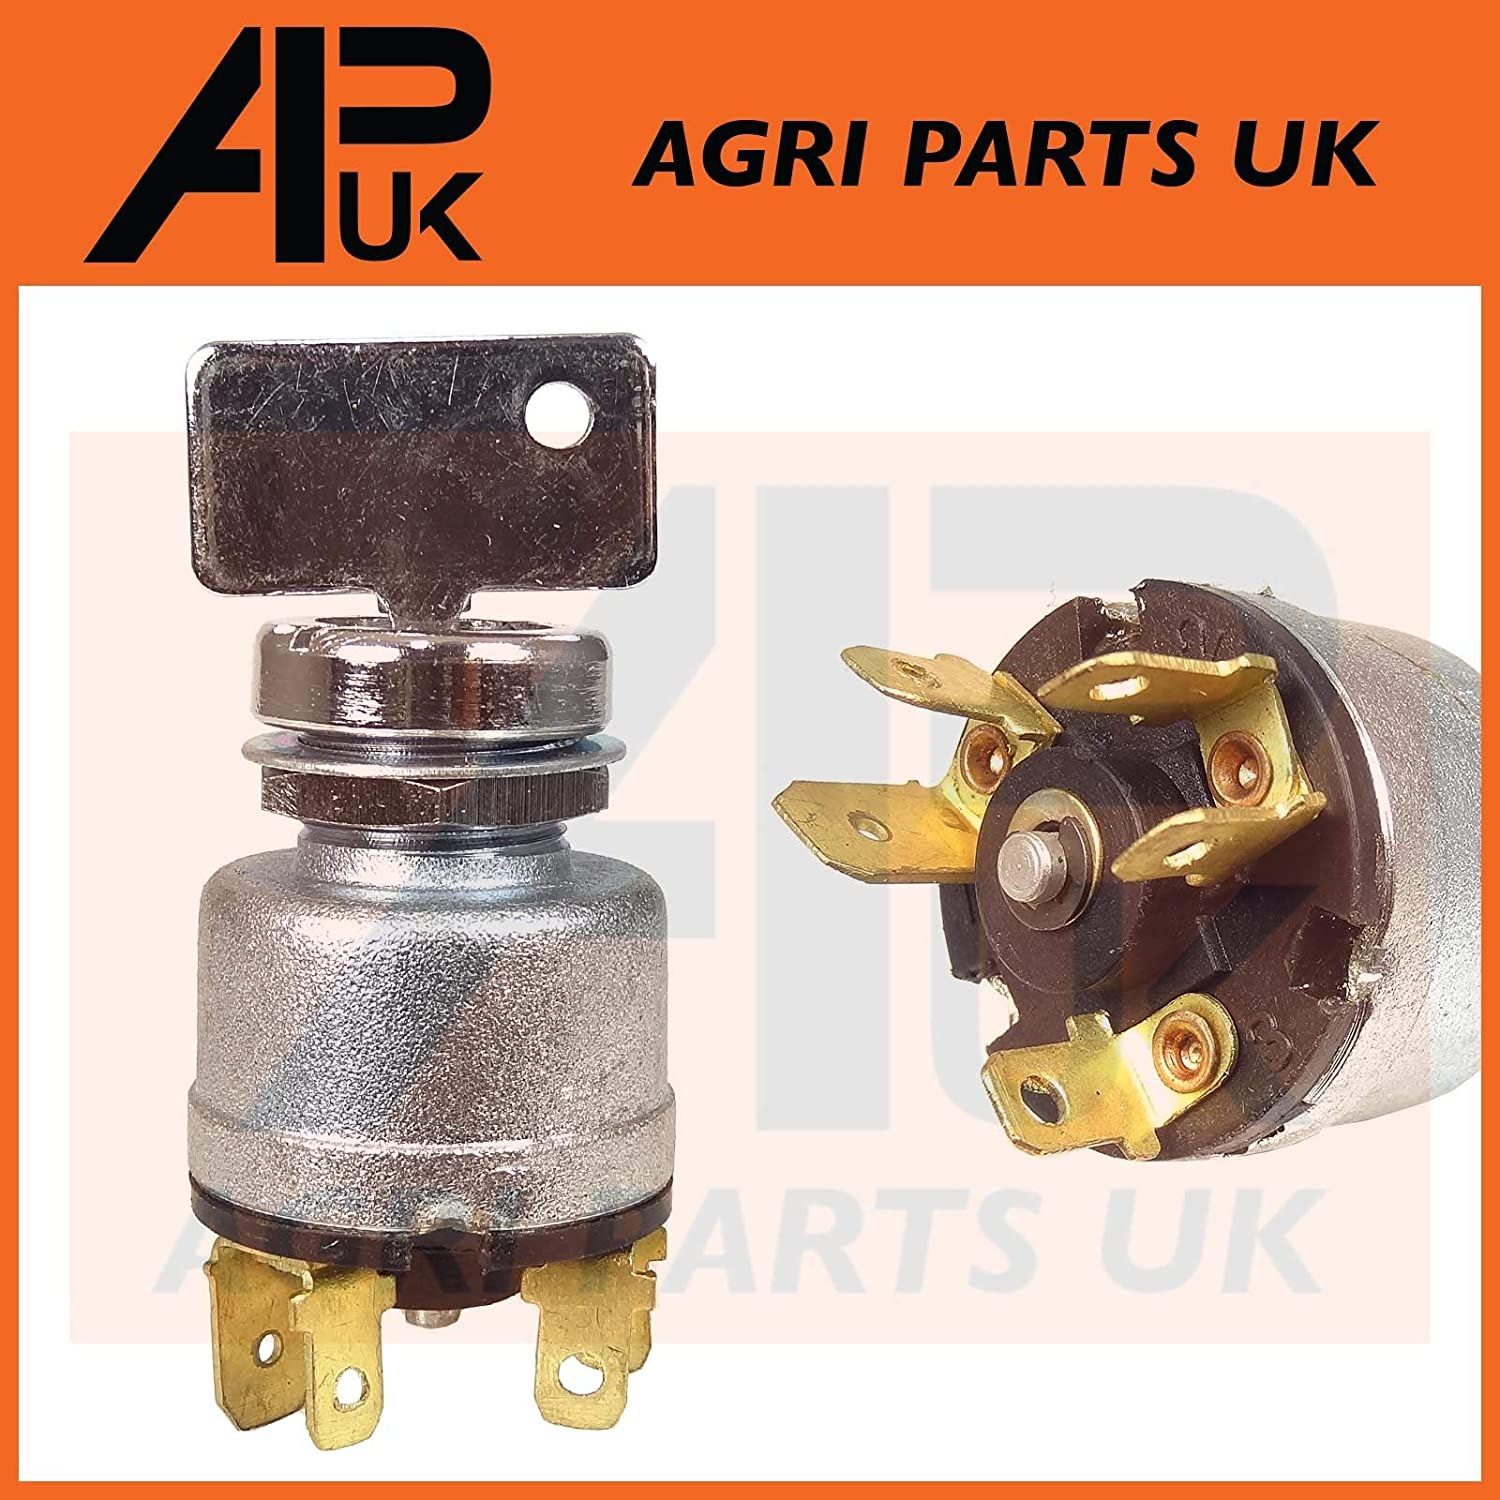 APUK Ignition Switch 3 Positions Compatible with Massey Ferguson MF 35 Petrol /& 135 Petrol Tractor